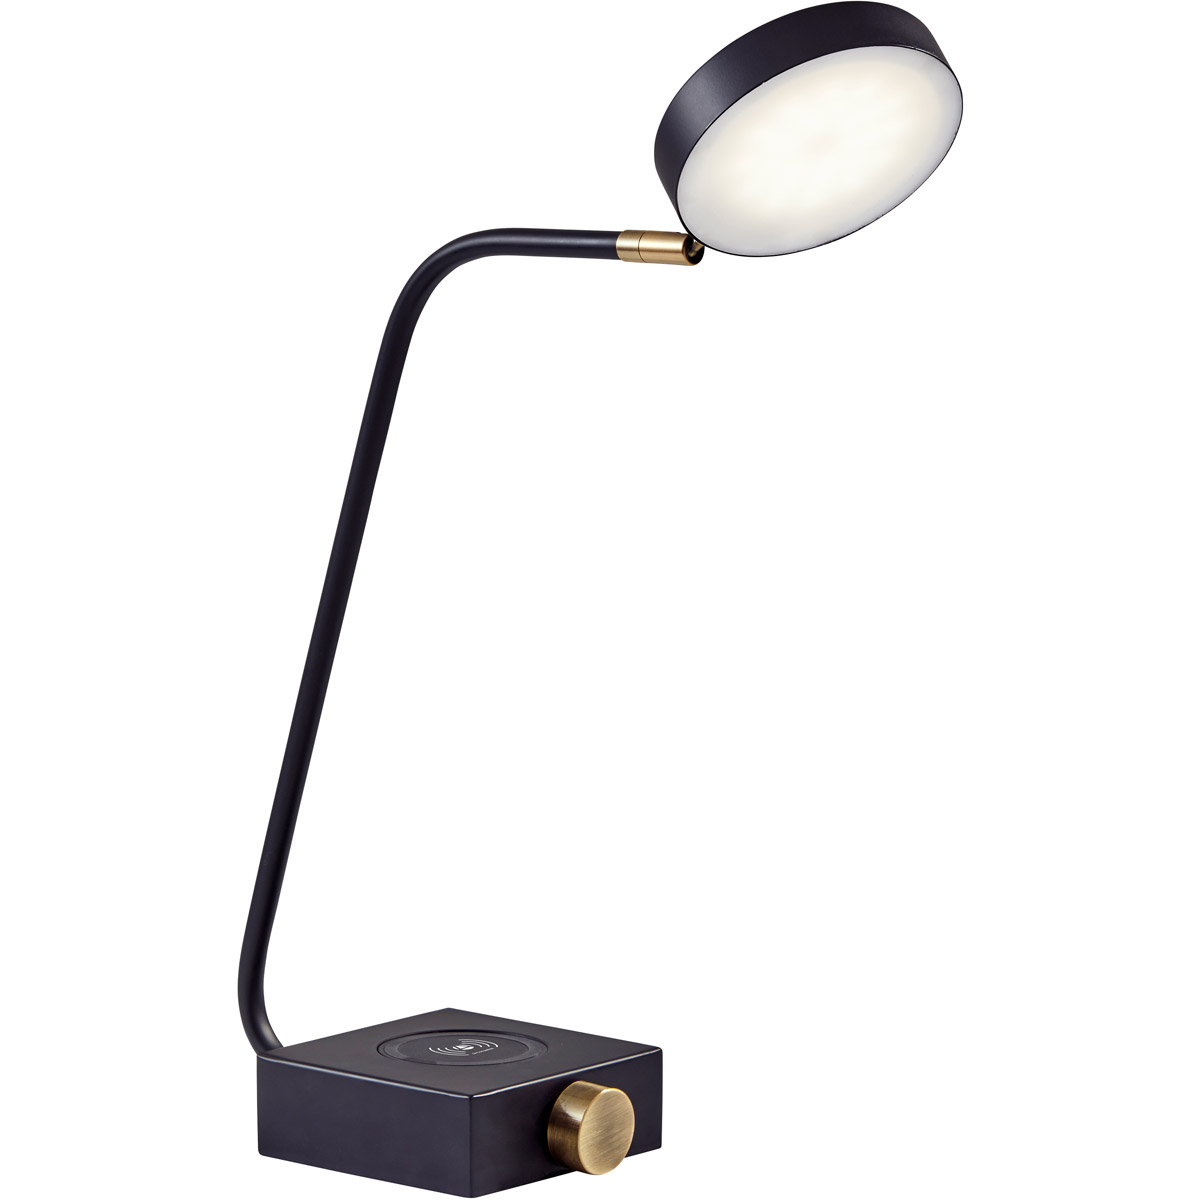 Adesso 3618-01 Conrad Desk Lamp Matte Black with Antique Bra